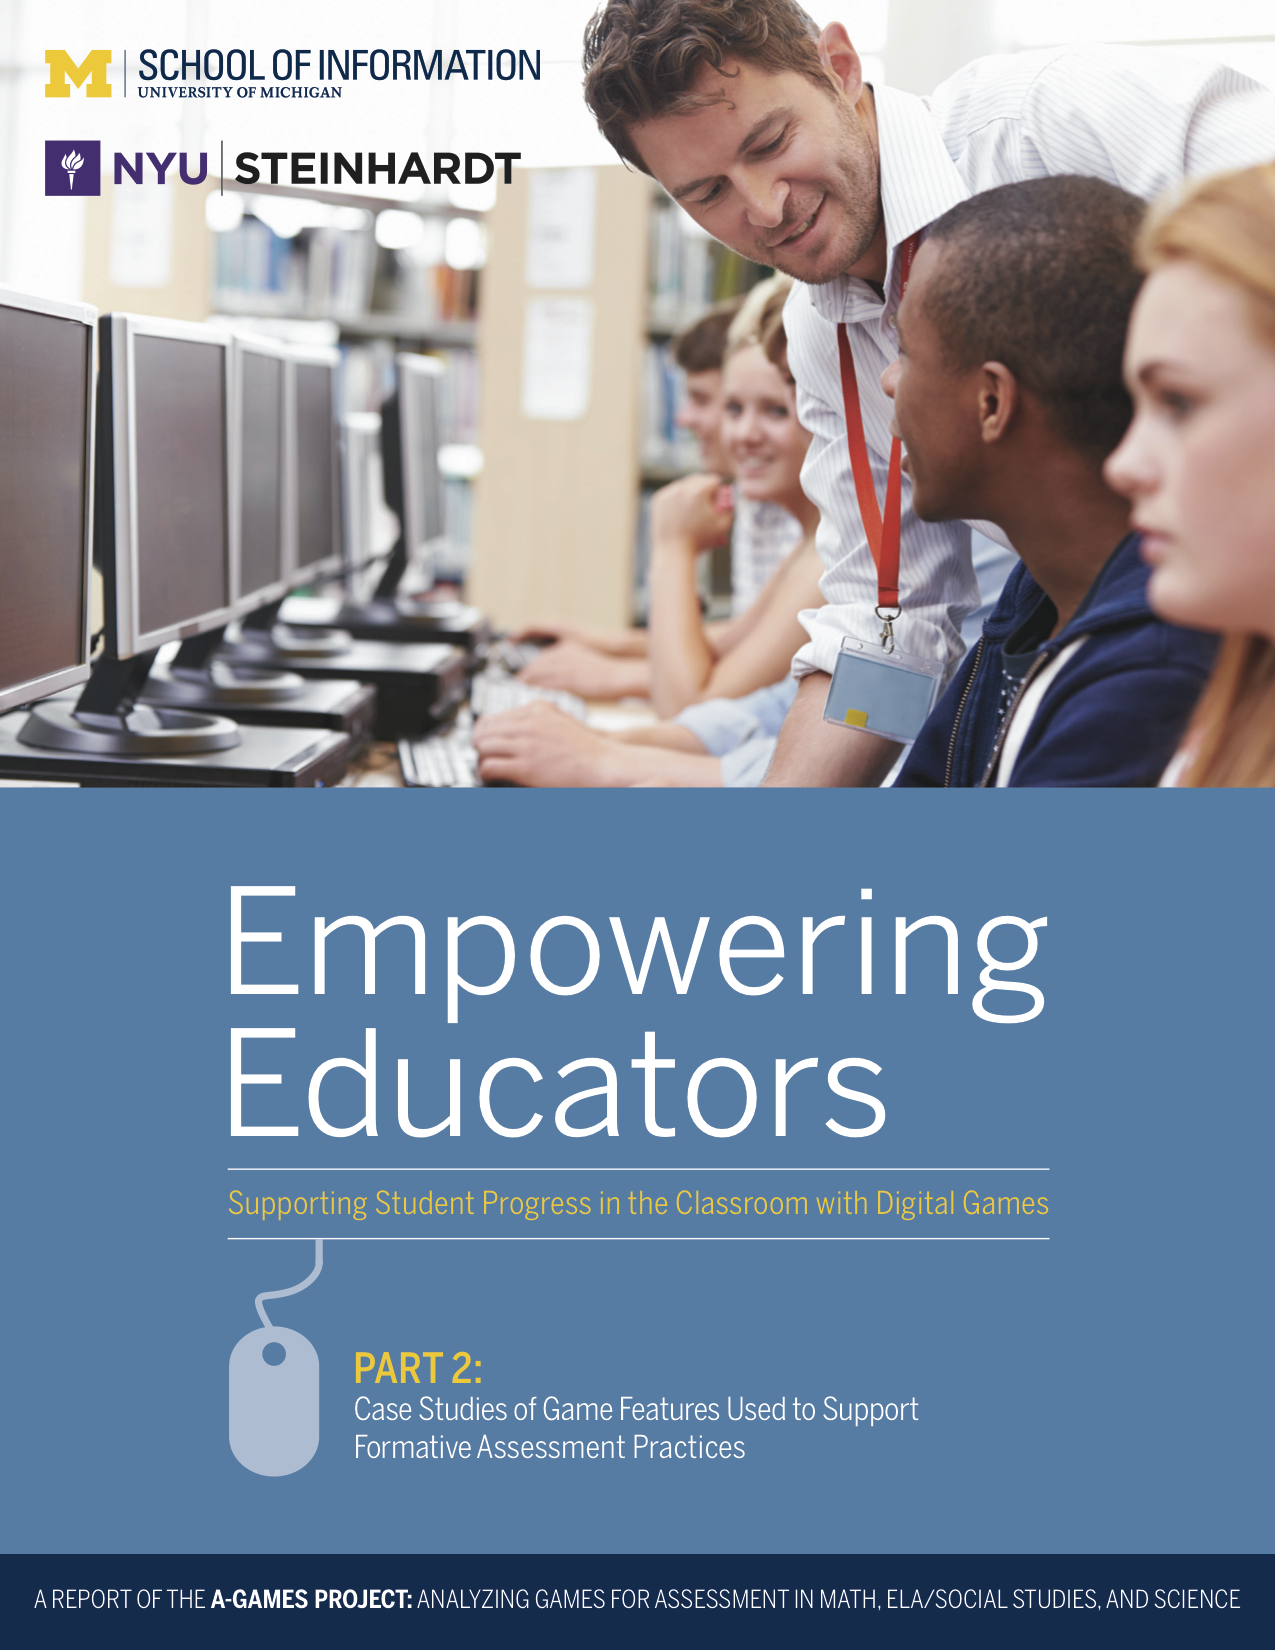 Information regarding A-Games Project on Empowering Educators part 2